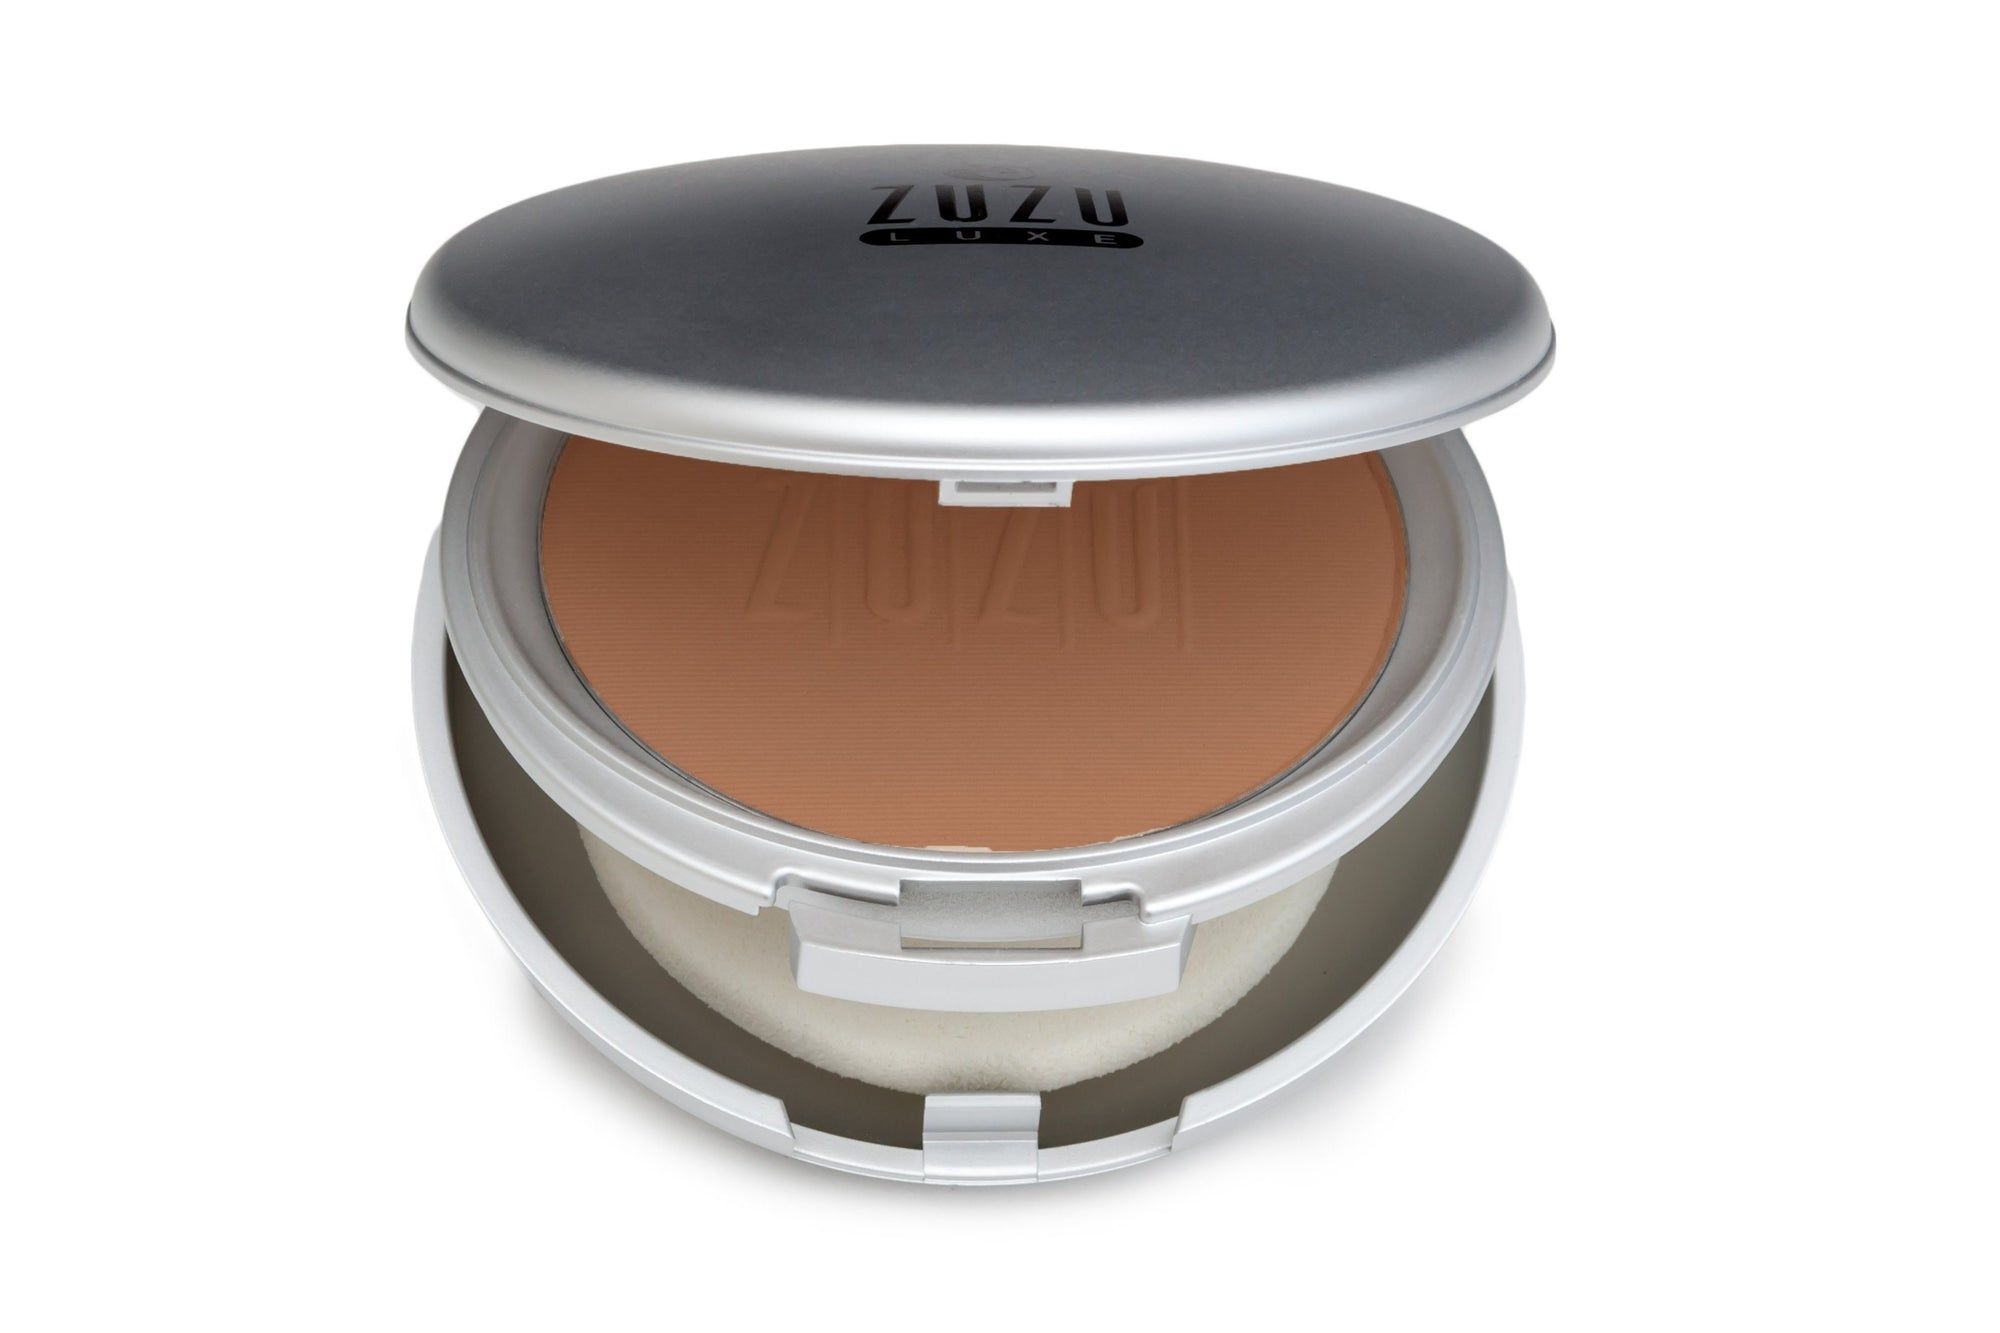 Beauty & Skin Care - Zuzu Luxe - Dual Powder Foundation, D-24